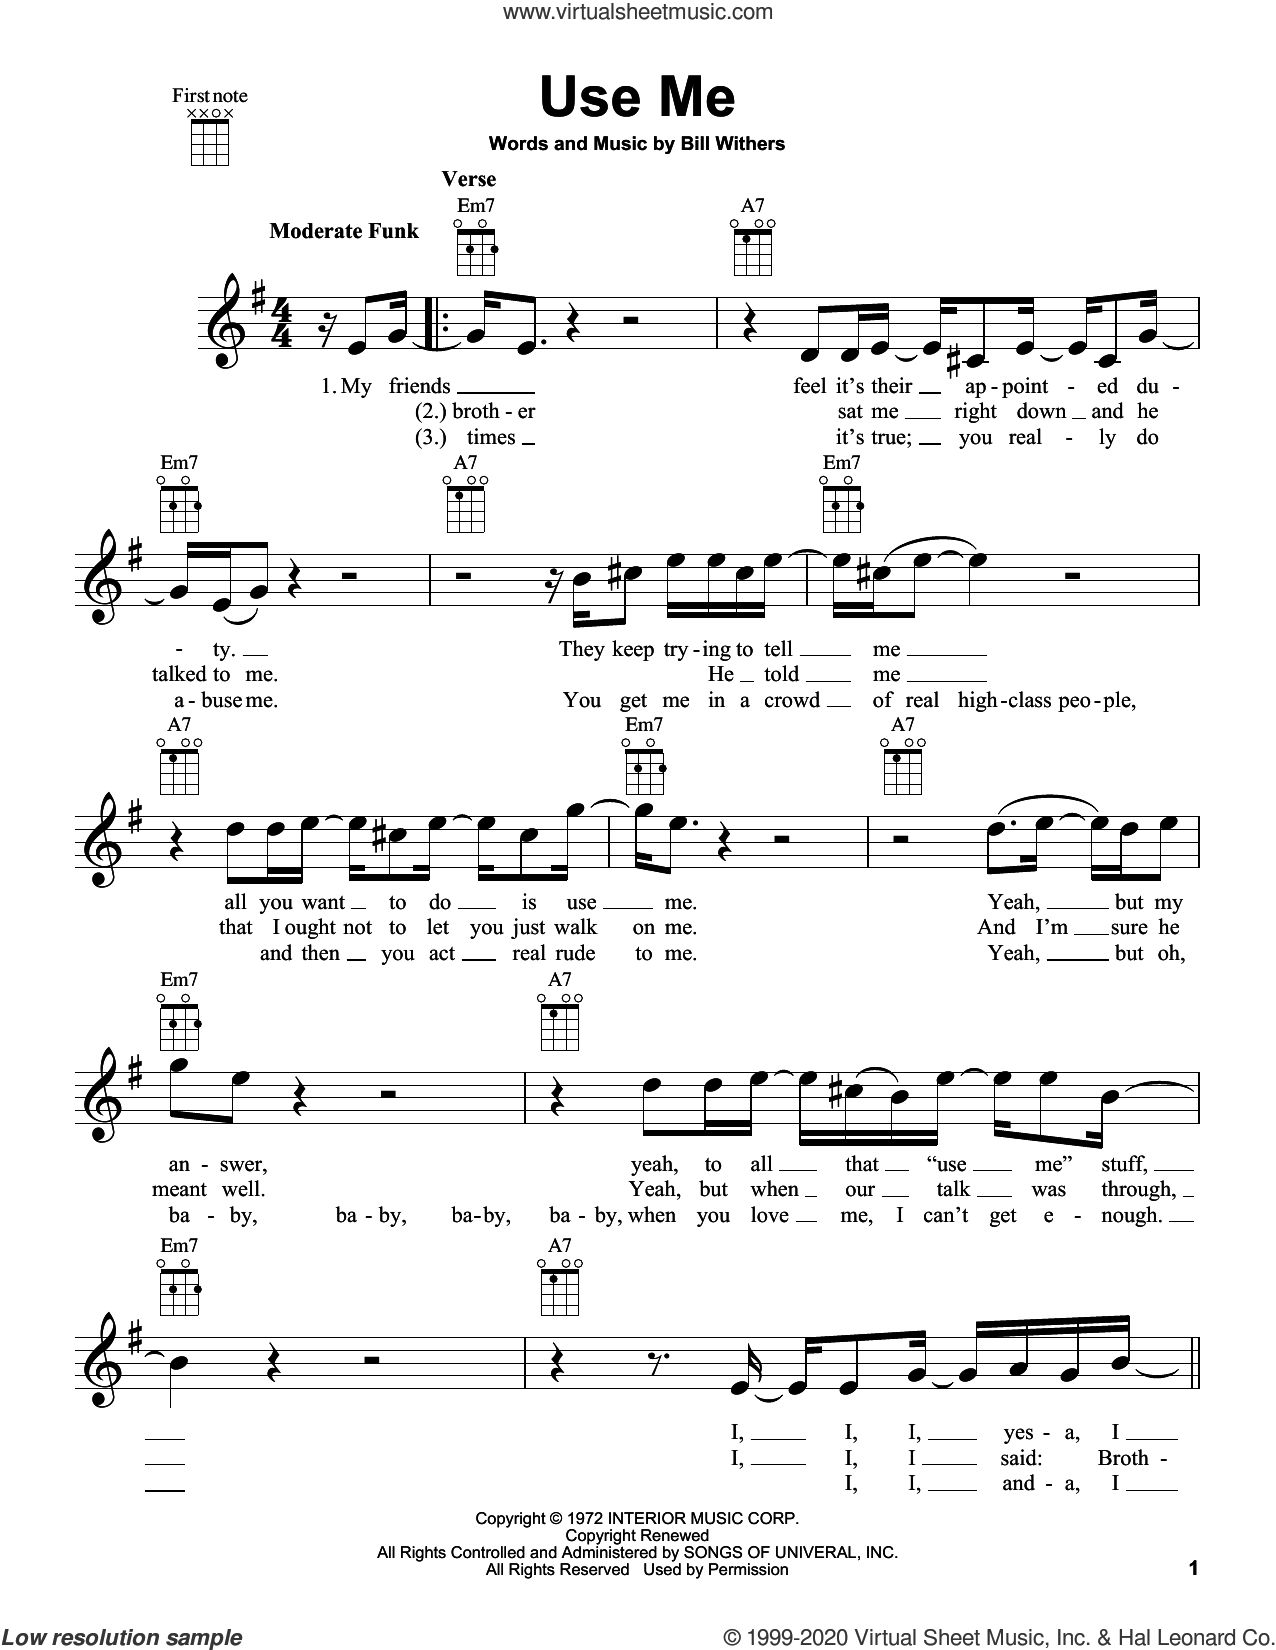 Use Me sheet music for ukulele by Bill Withers, intermediate skill level